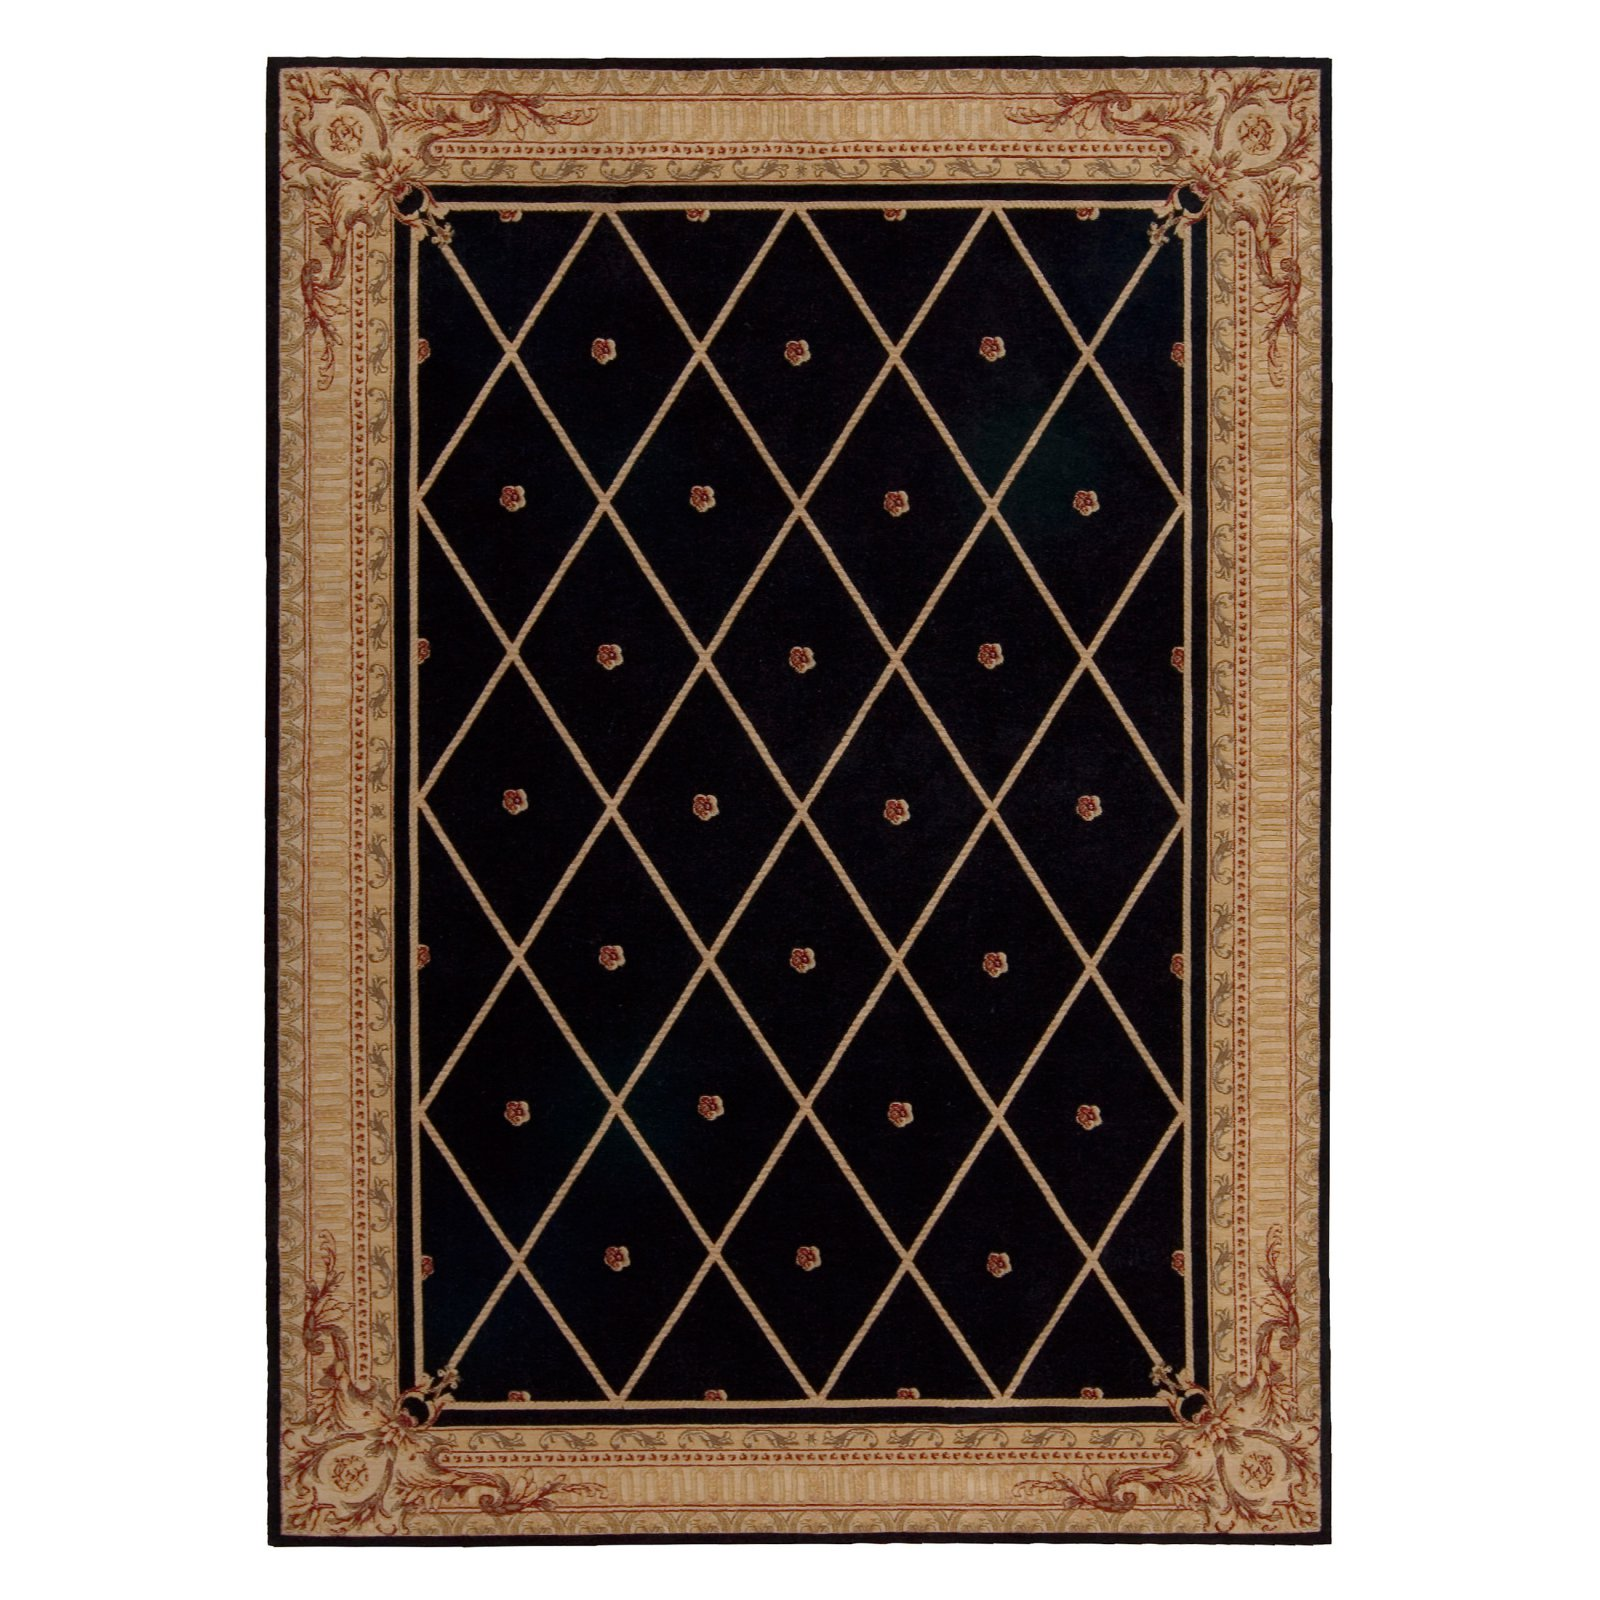 Nourison Ashton House AS03 Area Rug - Black